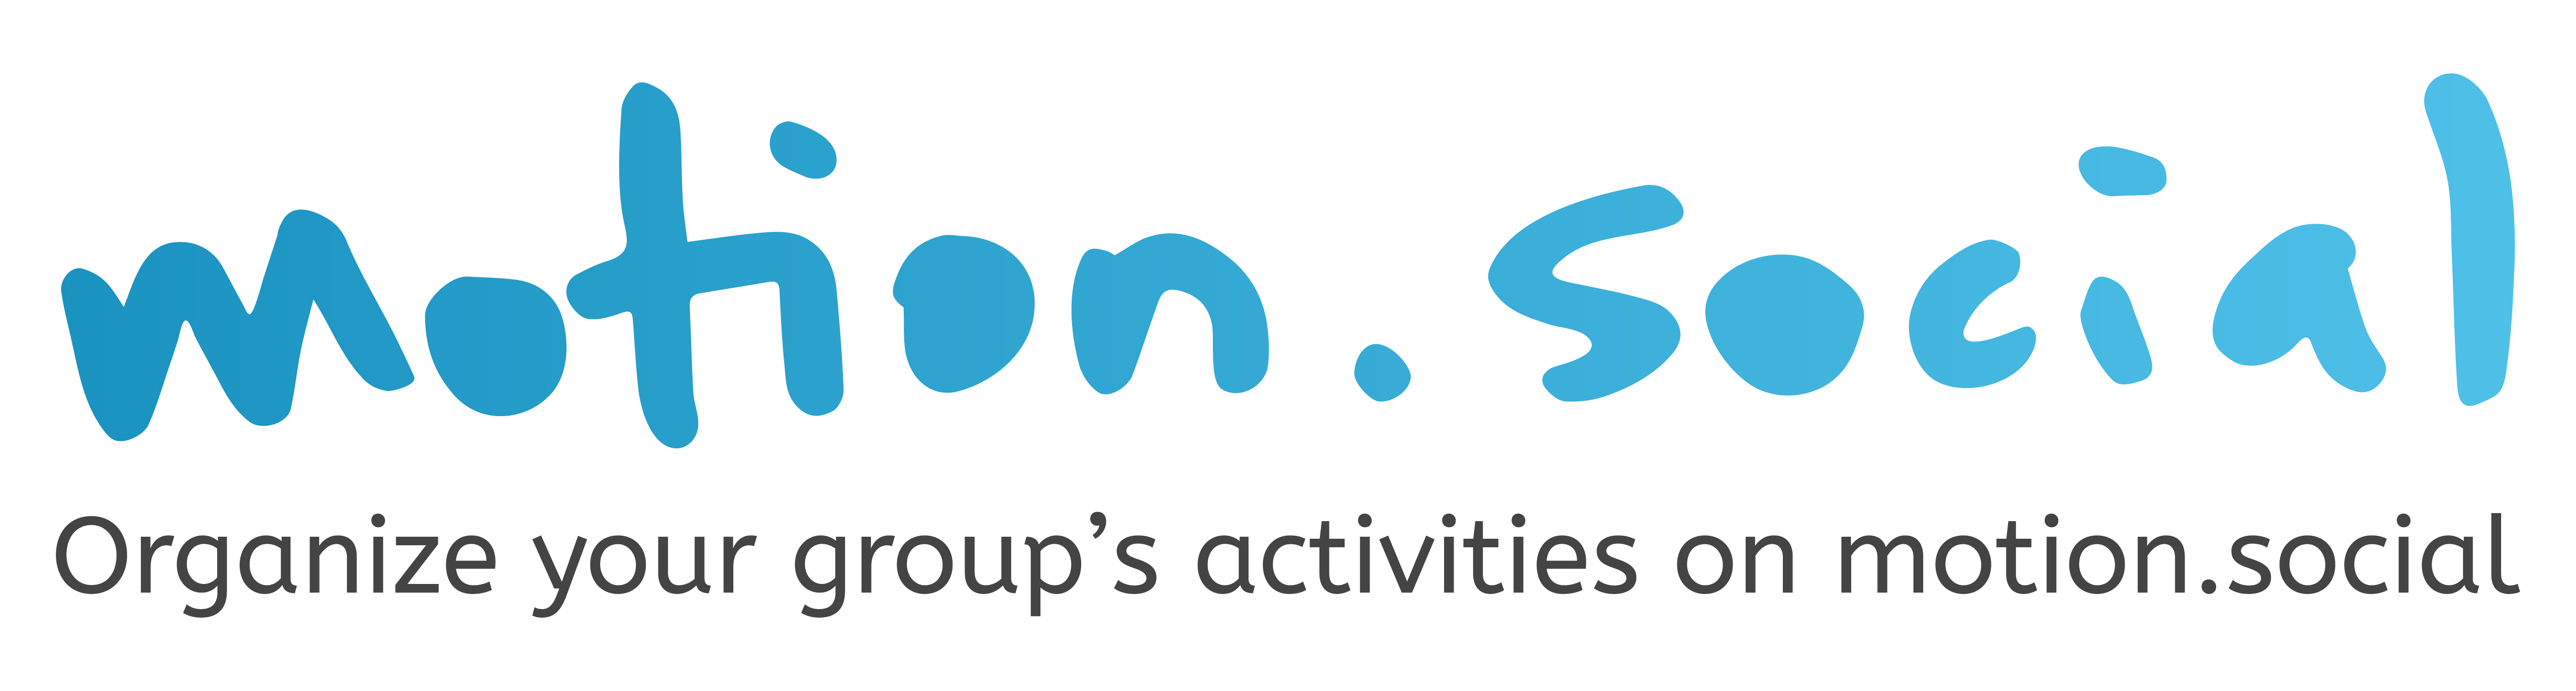 Organize your group's activities on motion.social